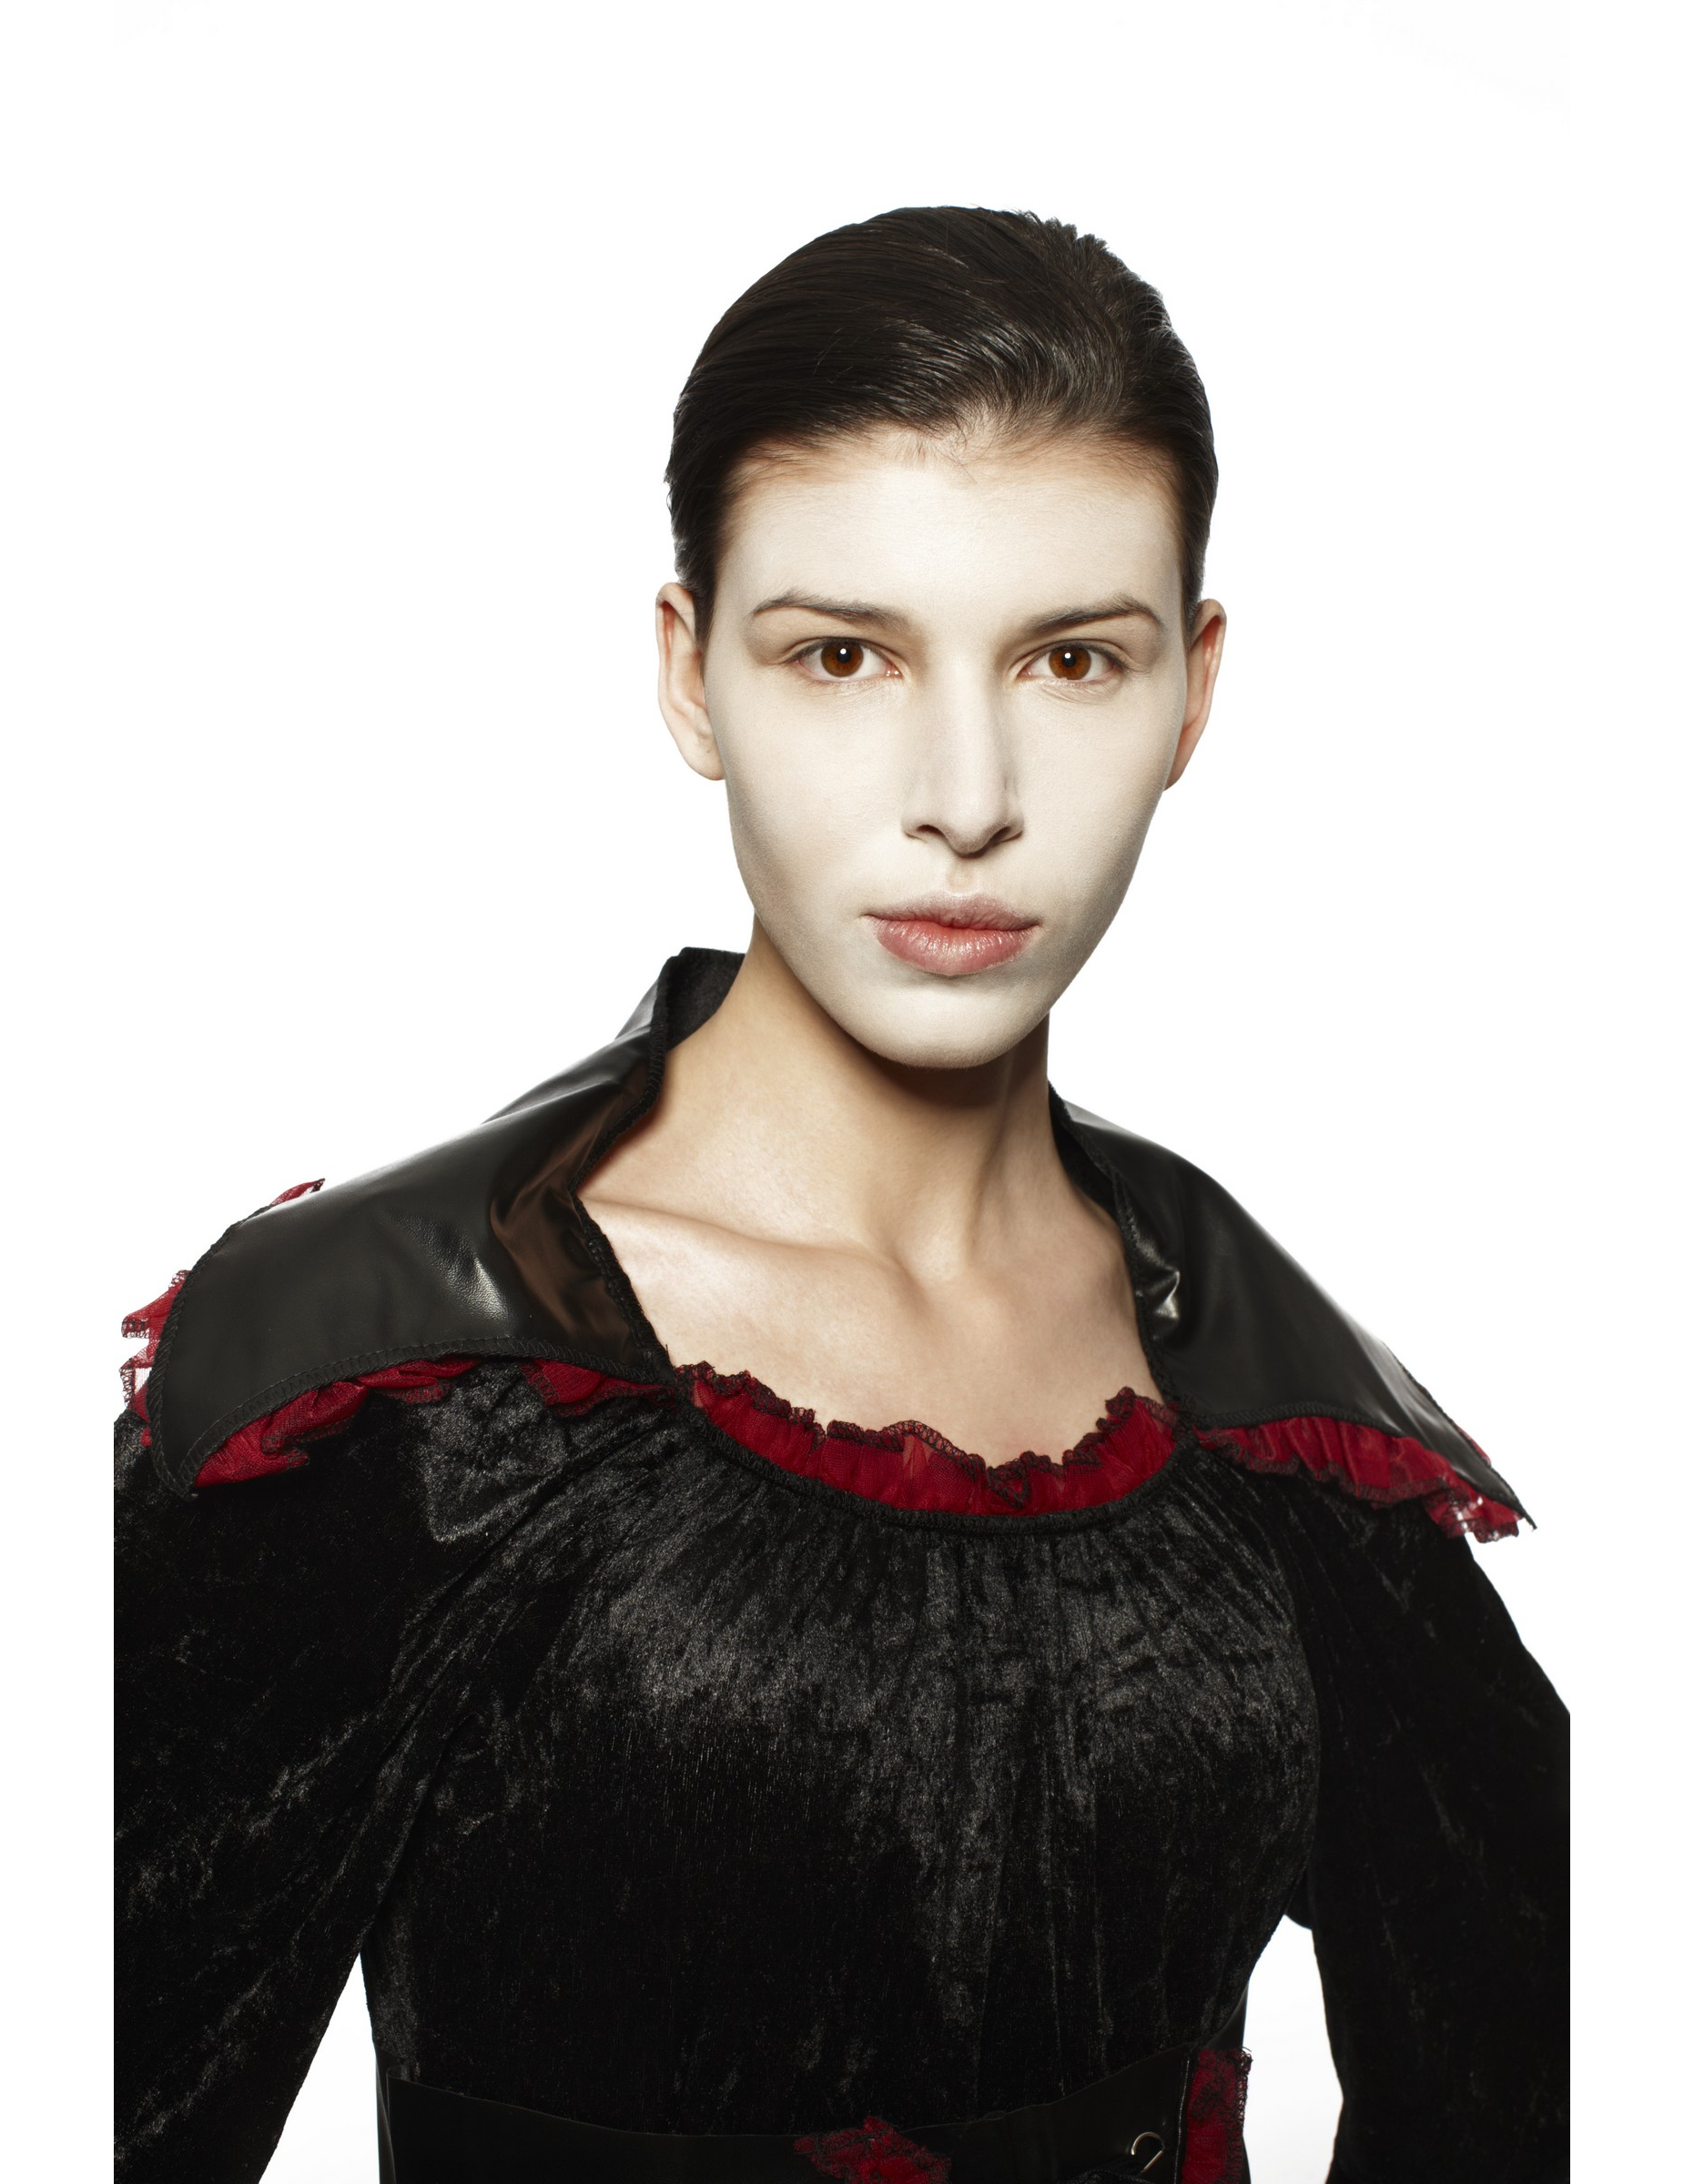 Kit maquillage gothique adulte halloween deguise toi for Comidee maquillage halloween adulte